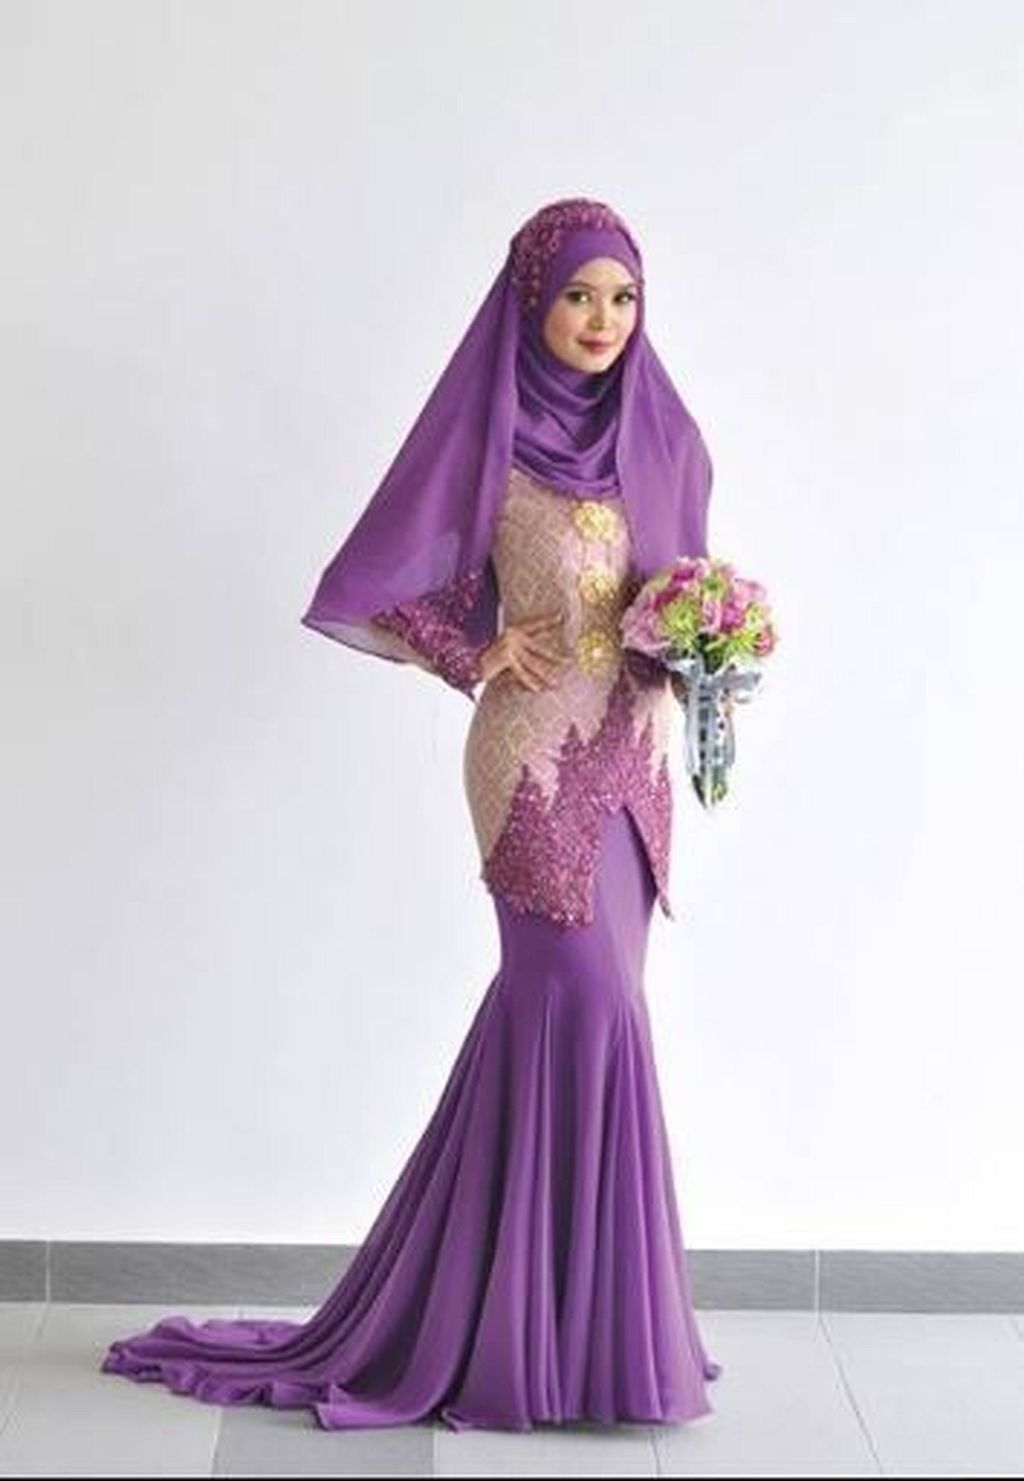 8+ Wedding Moslem Dress Inspiration  Pose pengantin, Pengantin